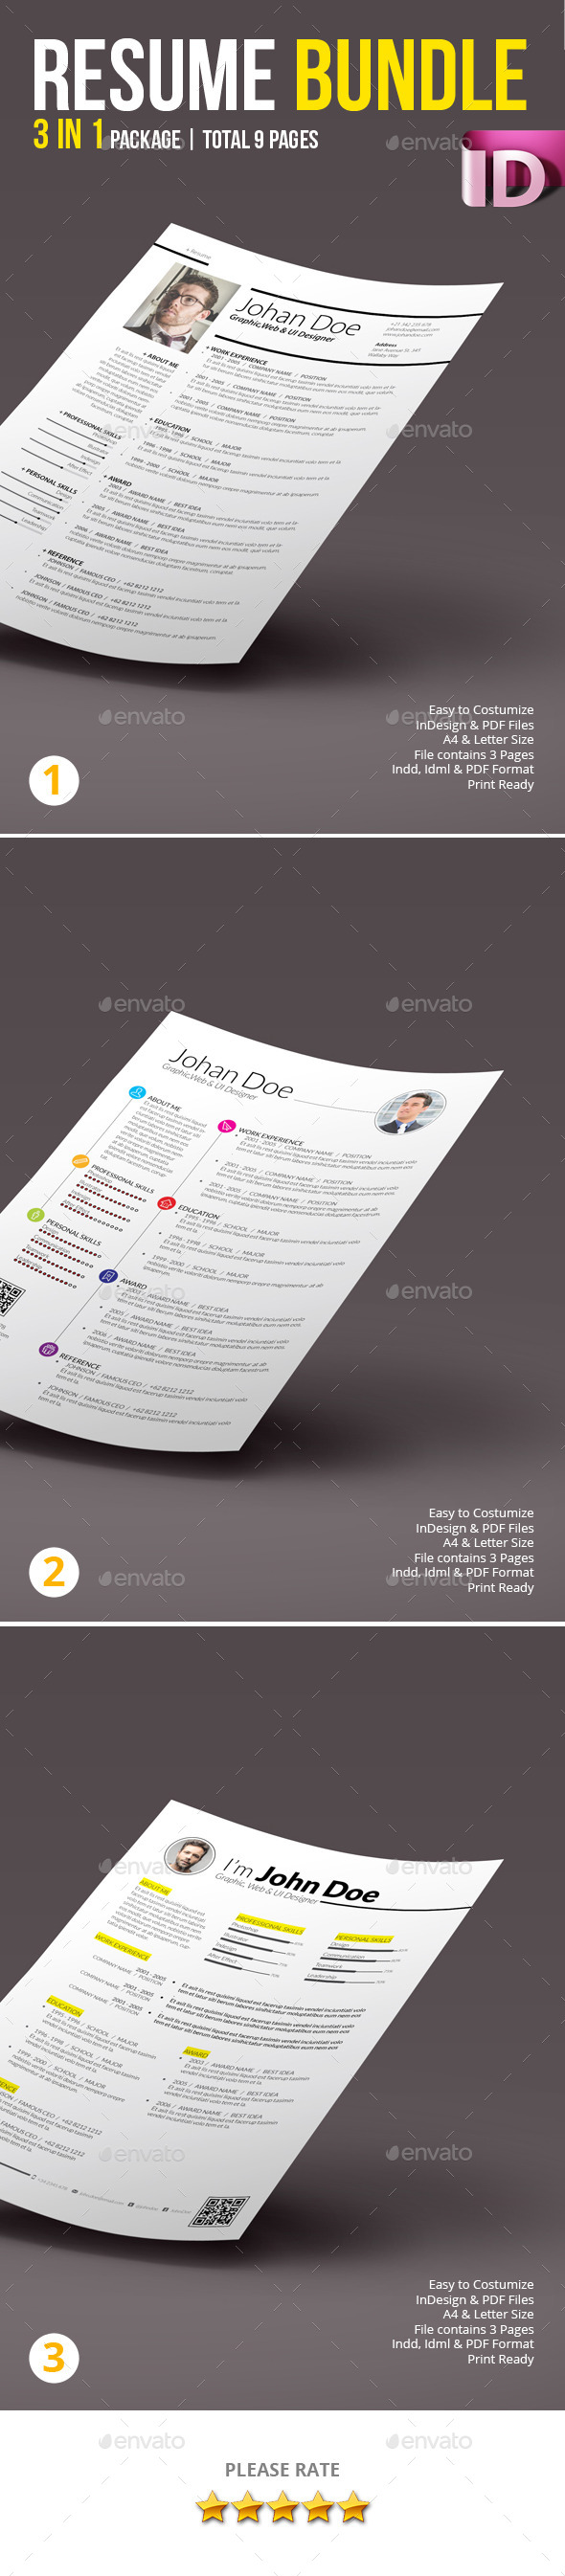 Resume Bundle 01